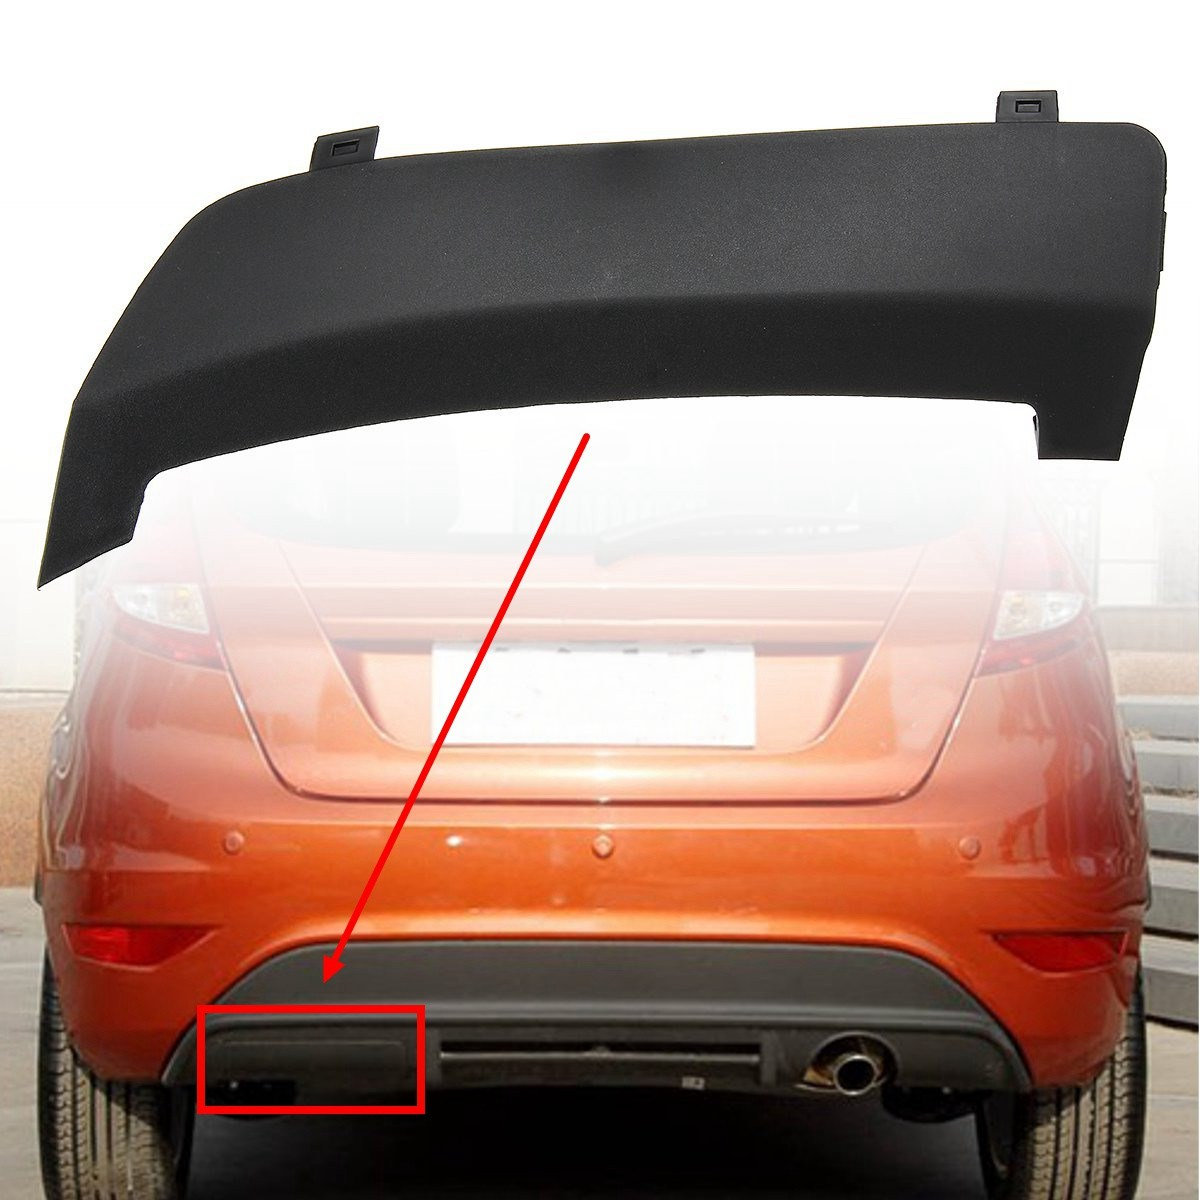 Rear bumper tow towing eye hook cover cap for ford fiesta mk7 2008 2016